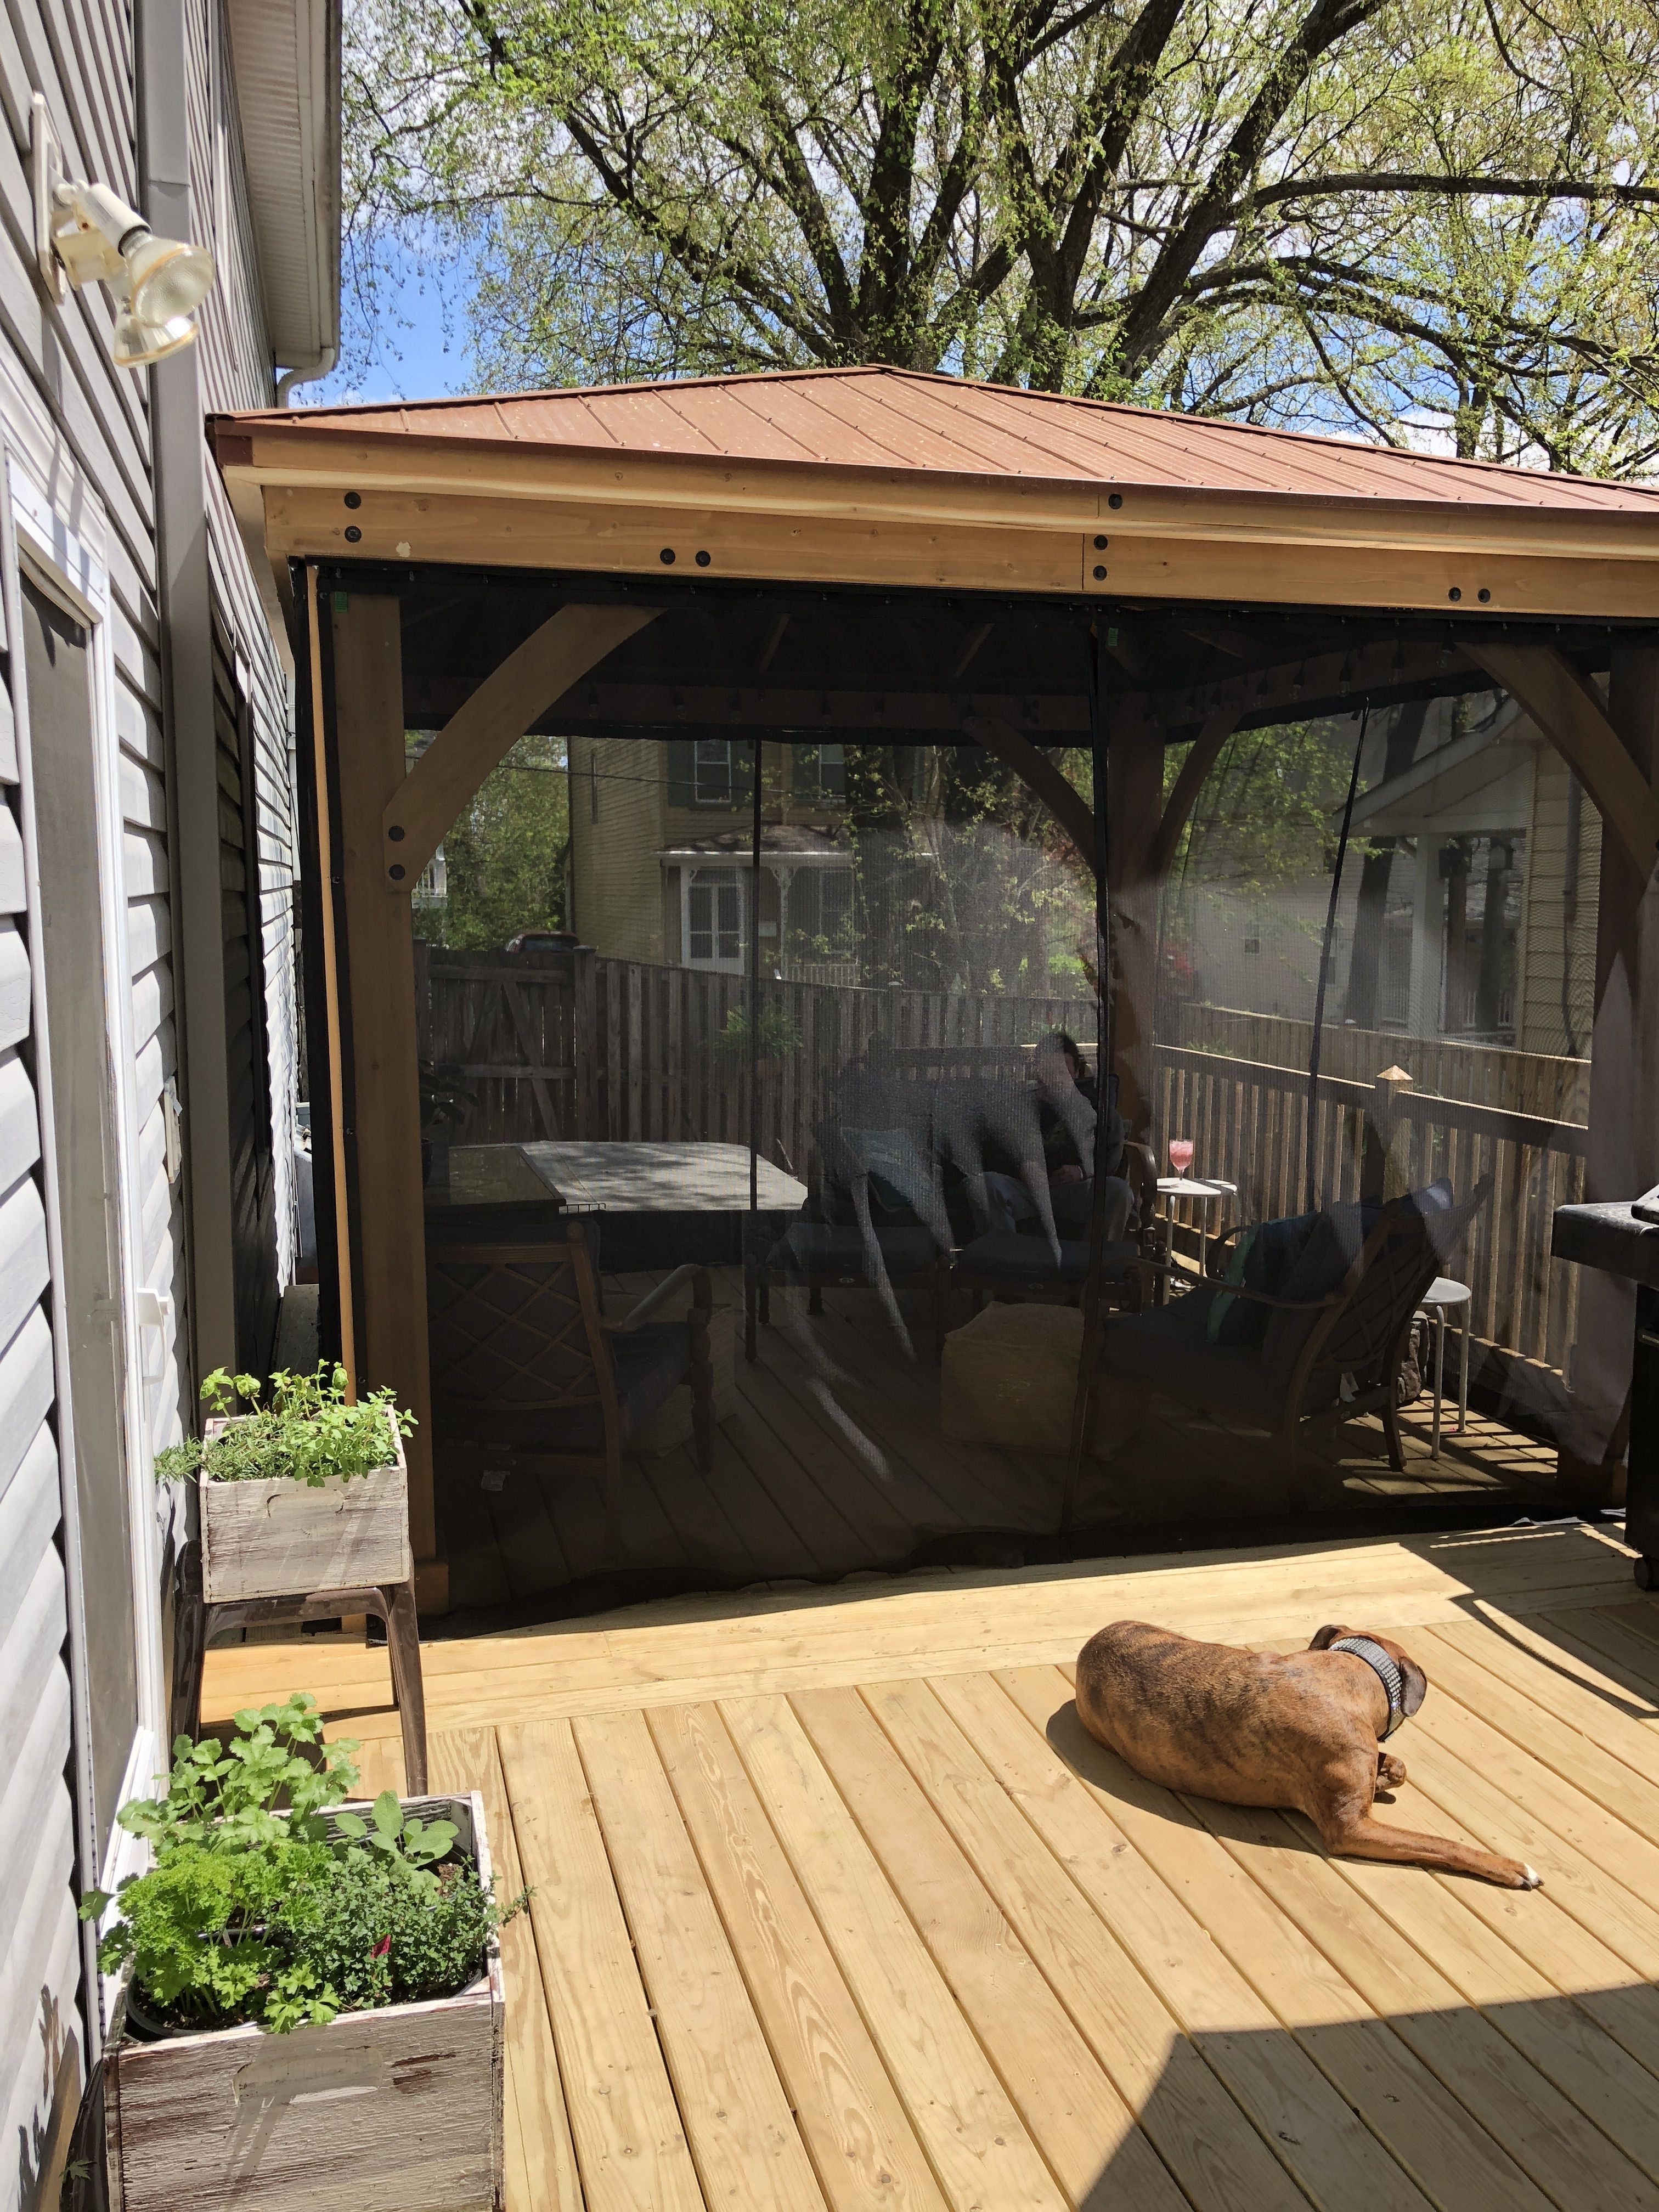 Yardistry Gazebo From Costco On Our New Deck With Screen